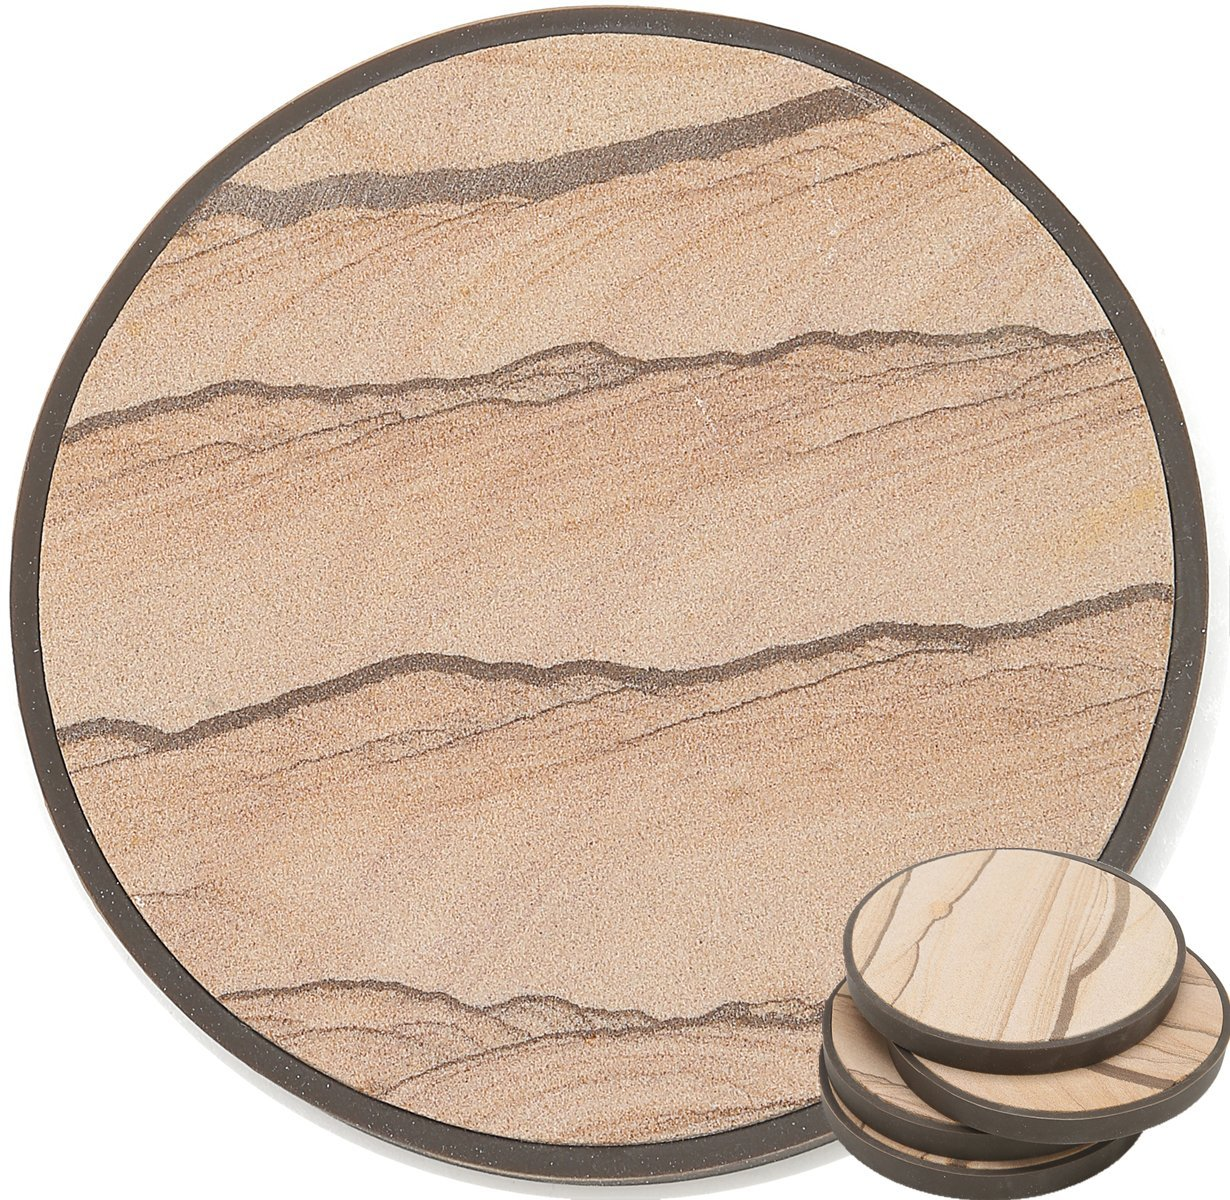 Stone Coasters in Protective Casing - Absorb Excess Drinks Sweat, Prevent Scratch To Furniture, Each Absorbent Sandstone Sit In A Detachable Table Friendly Non Slip Back Cover, Set of 4 With NO Holder Enkore StoneCoffe4